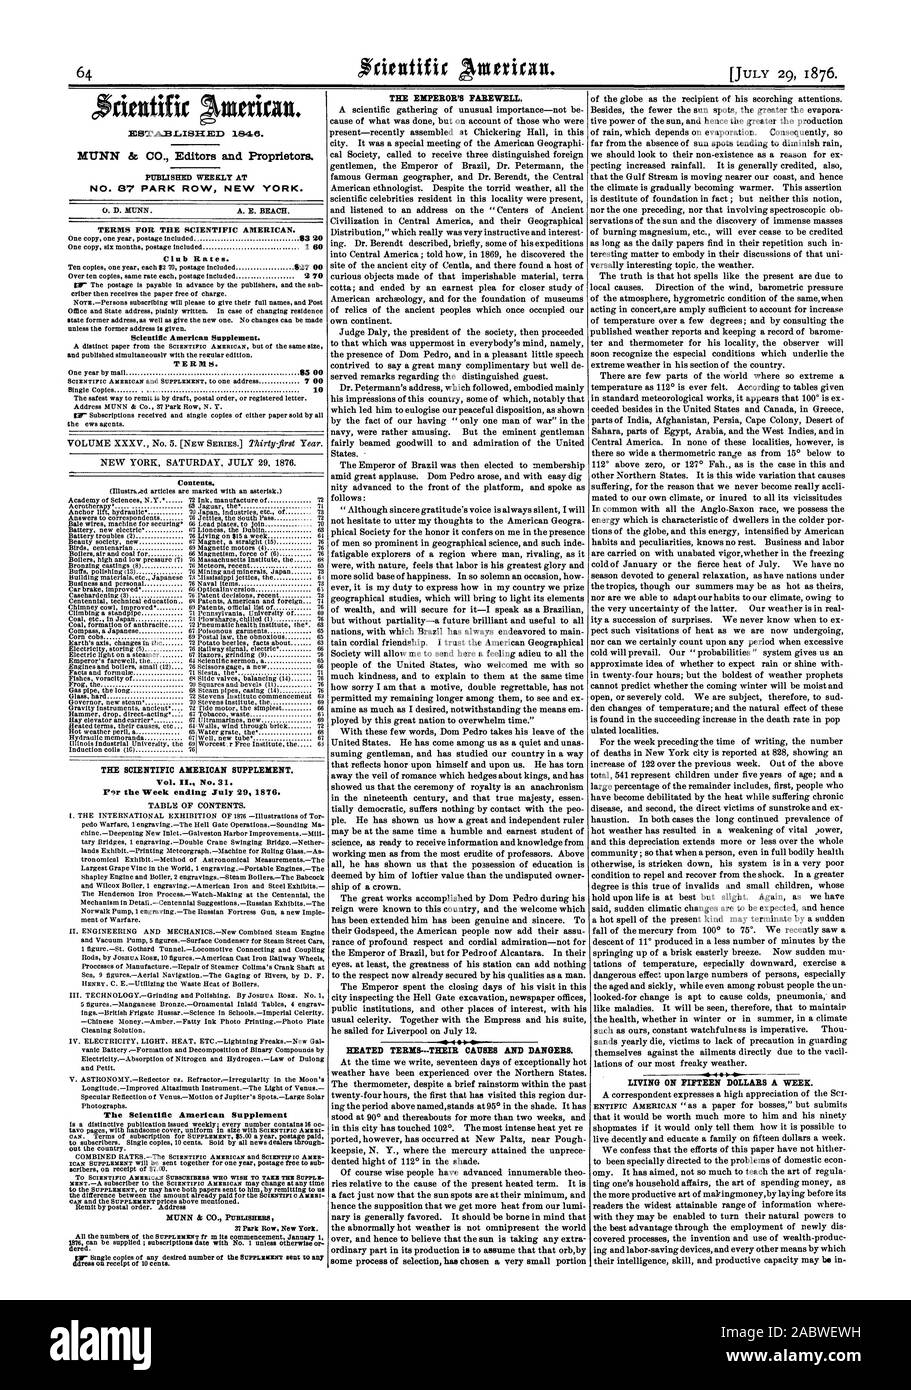 Week ending July 29 1876. TABLE OF CONTENTS. The Scientific American Supplement THE EMPEROR'S FAREWELL. LIVING ON FIFTEEN DOLLARS A WEEK. Contents., 1876-07-29 Stock Photo